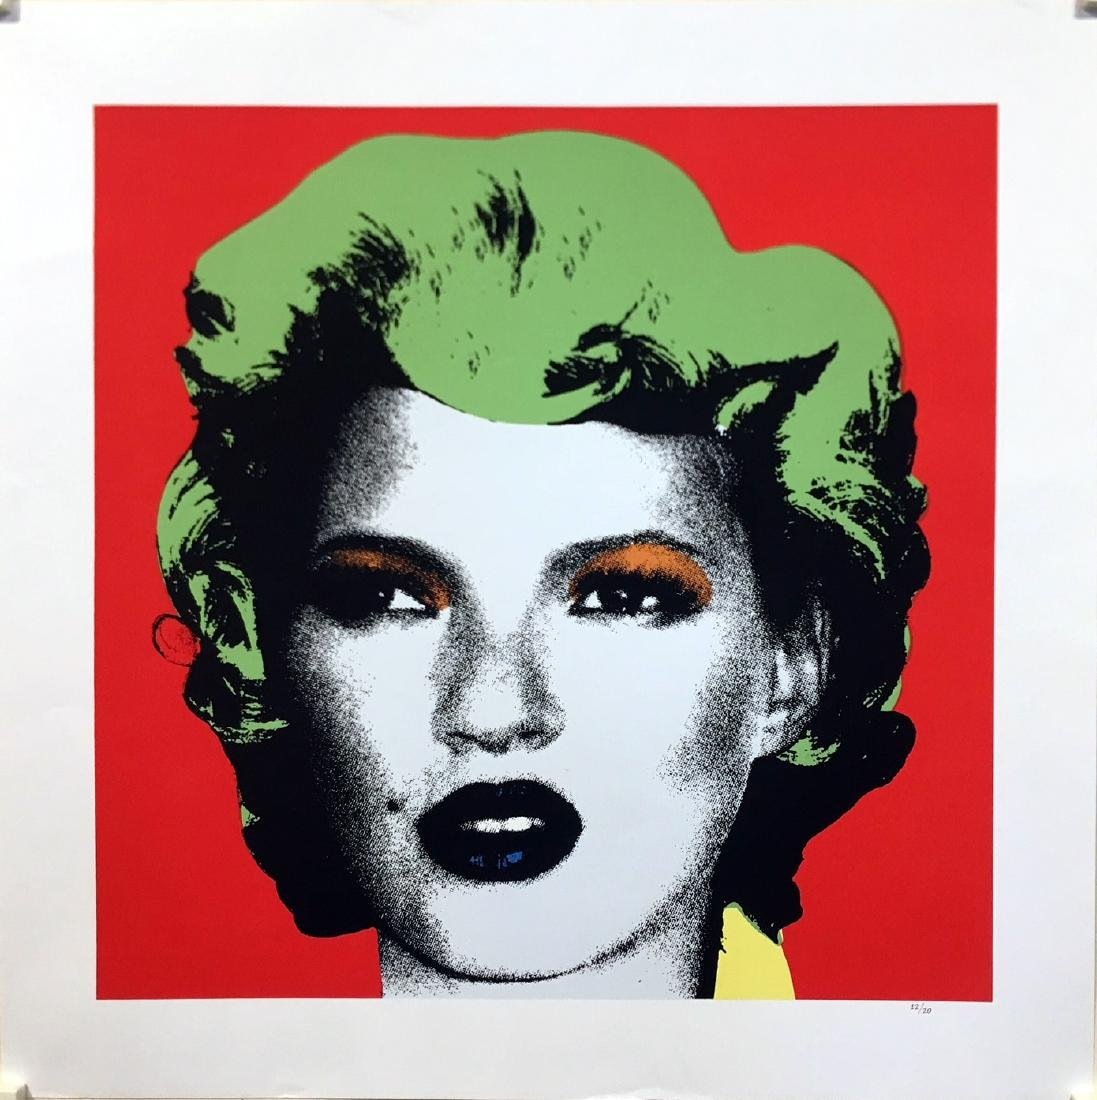 Kate Moss (Green Hair) Limited Edition After Banksy